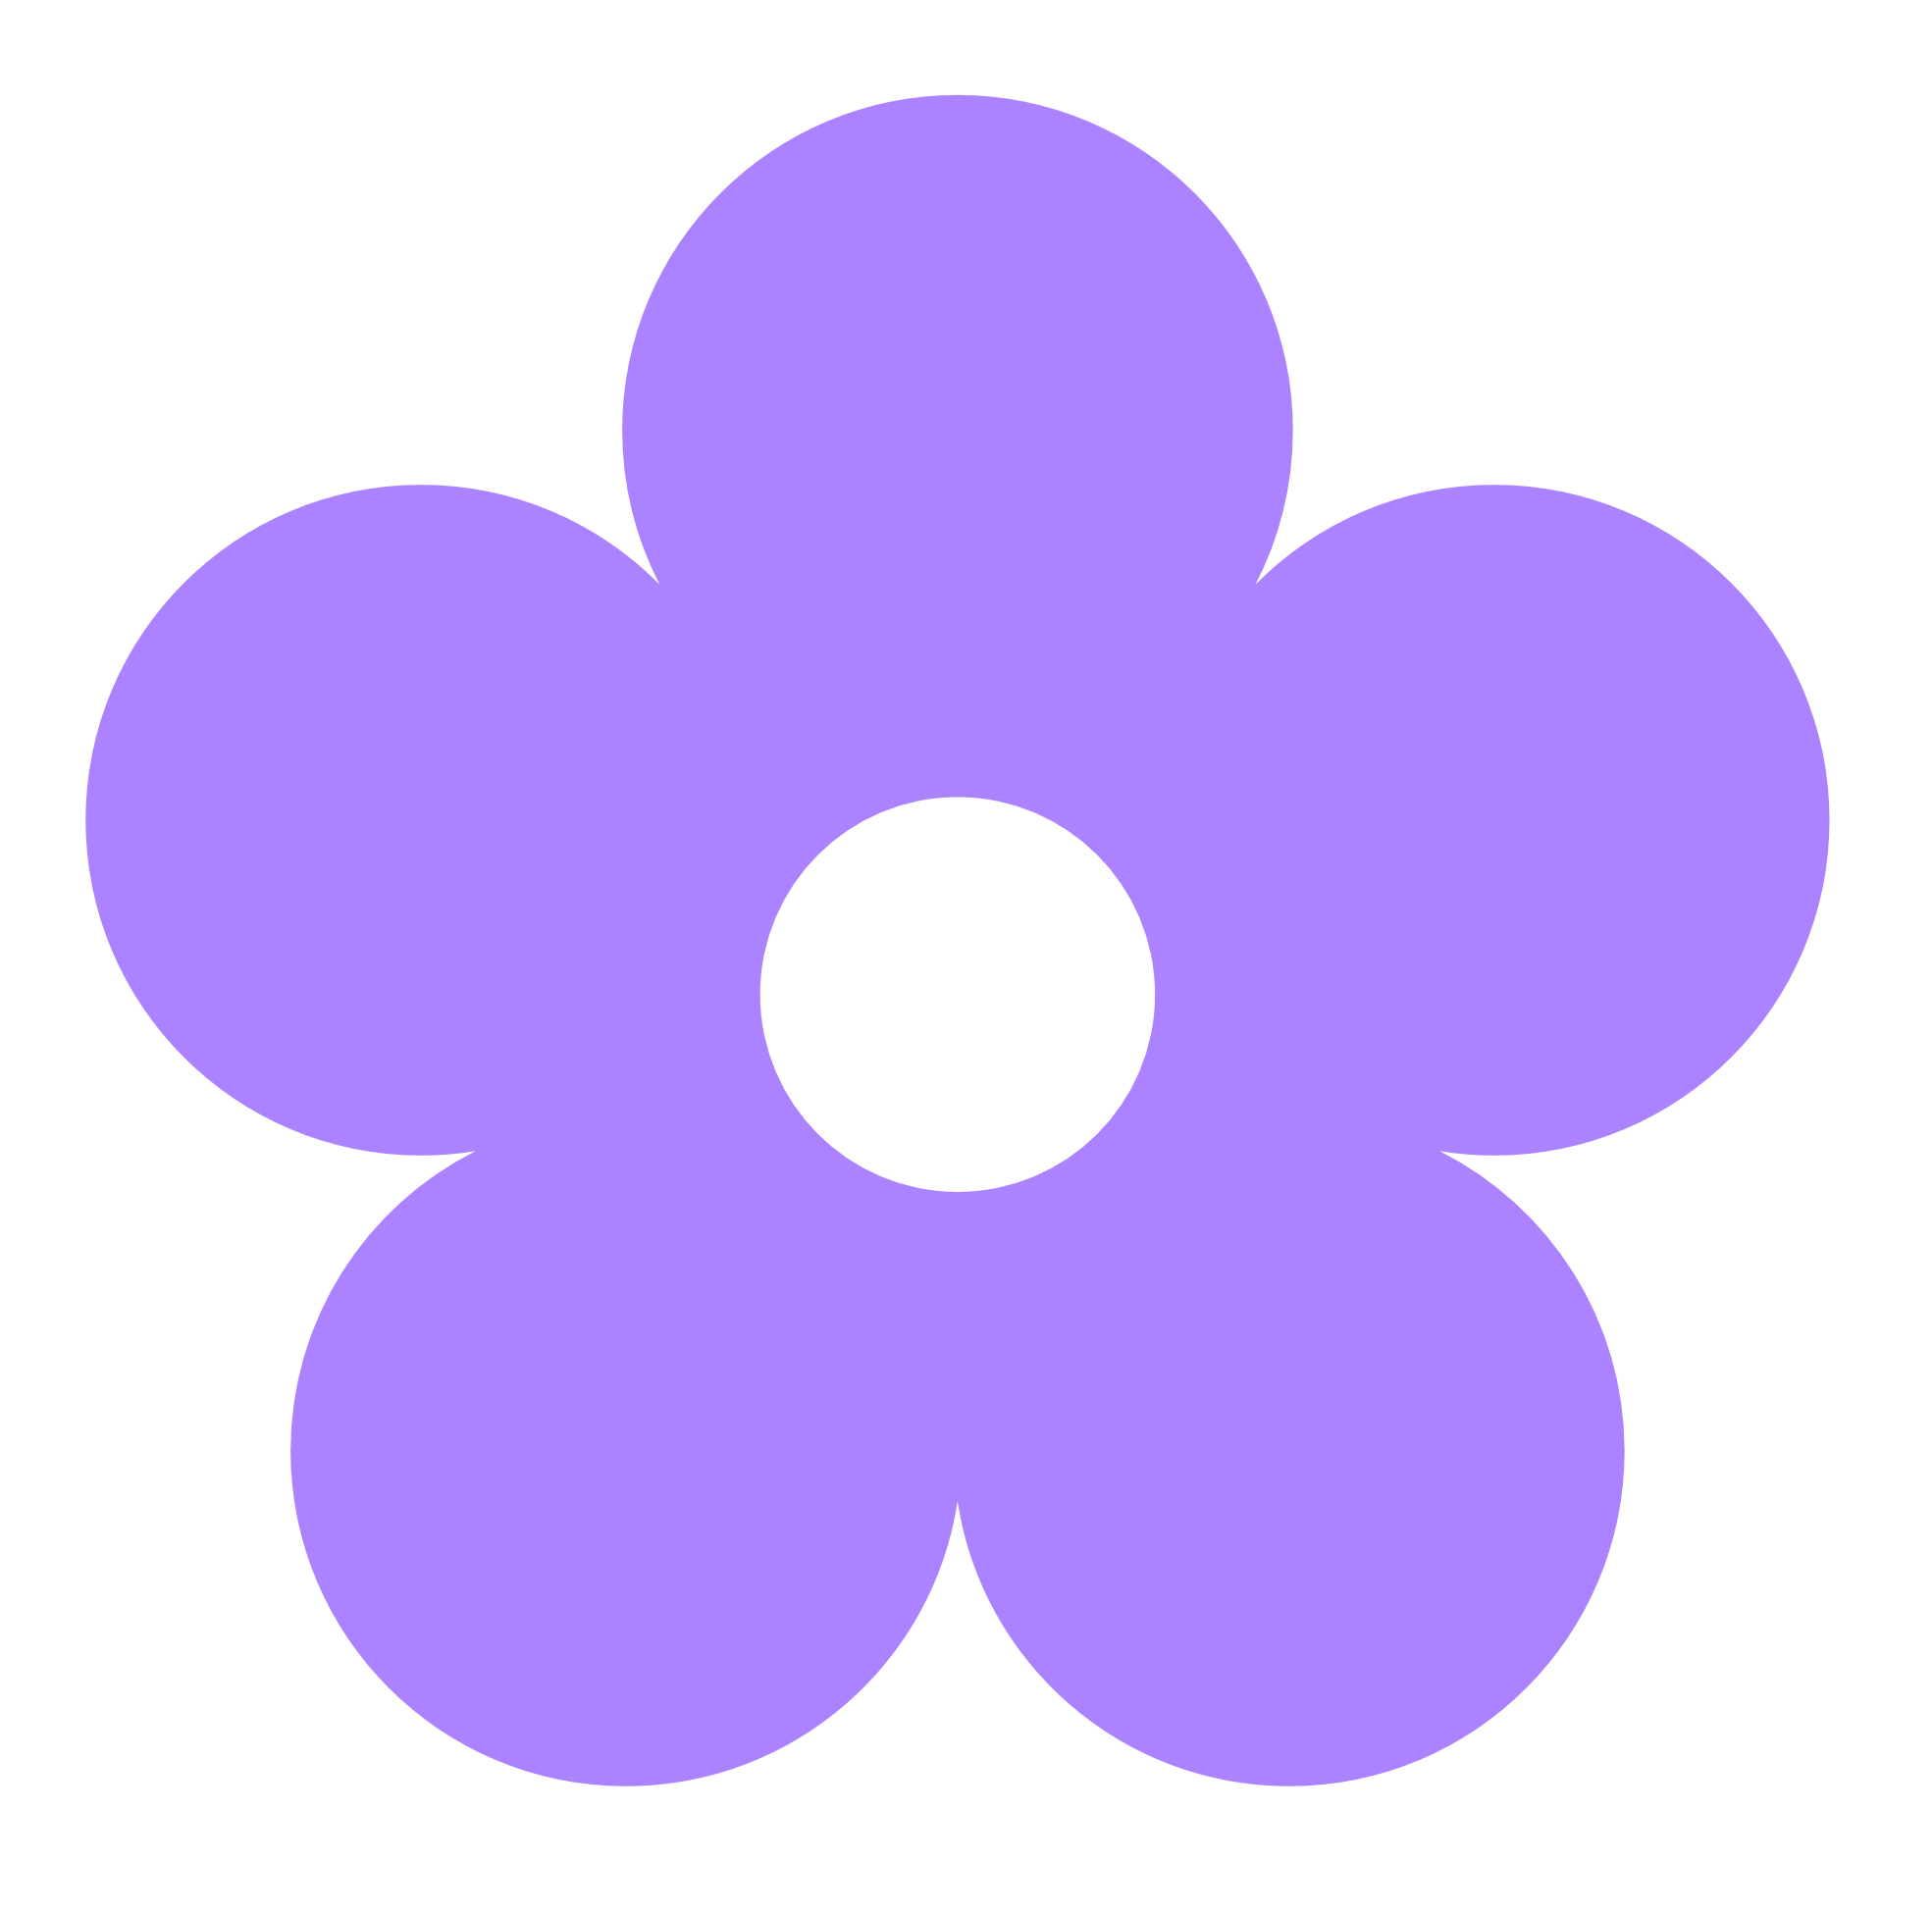 Simple flower cliparts svg library download 100+ Simple Flower Clip Art | ClipartLook svg library download